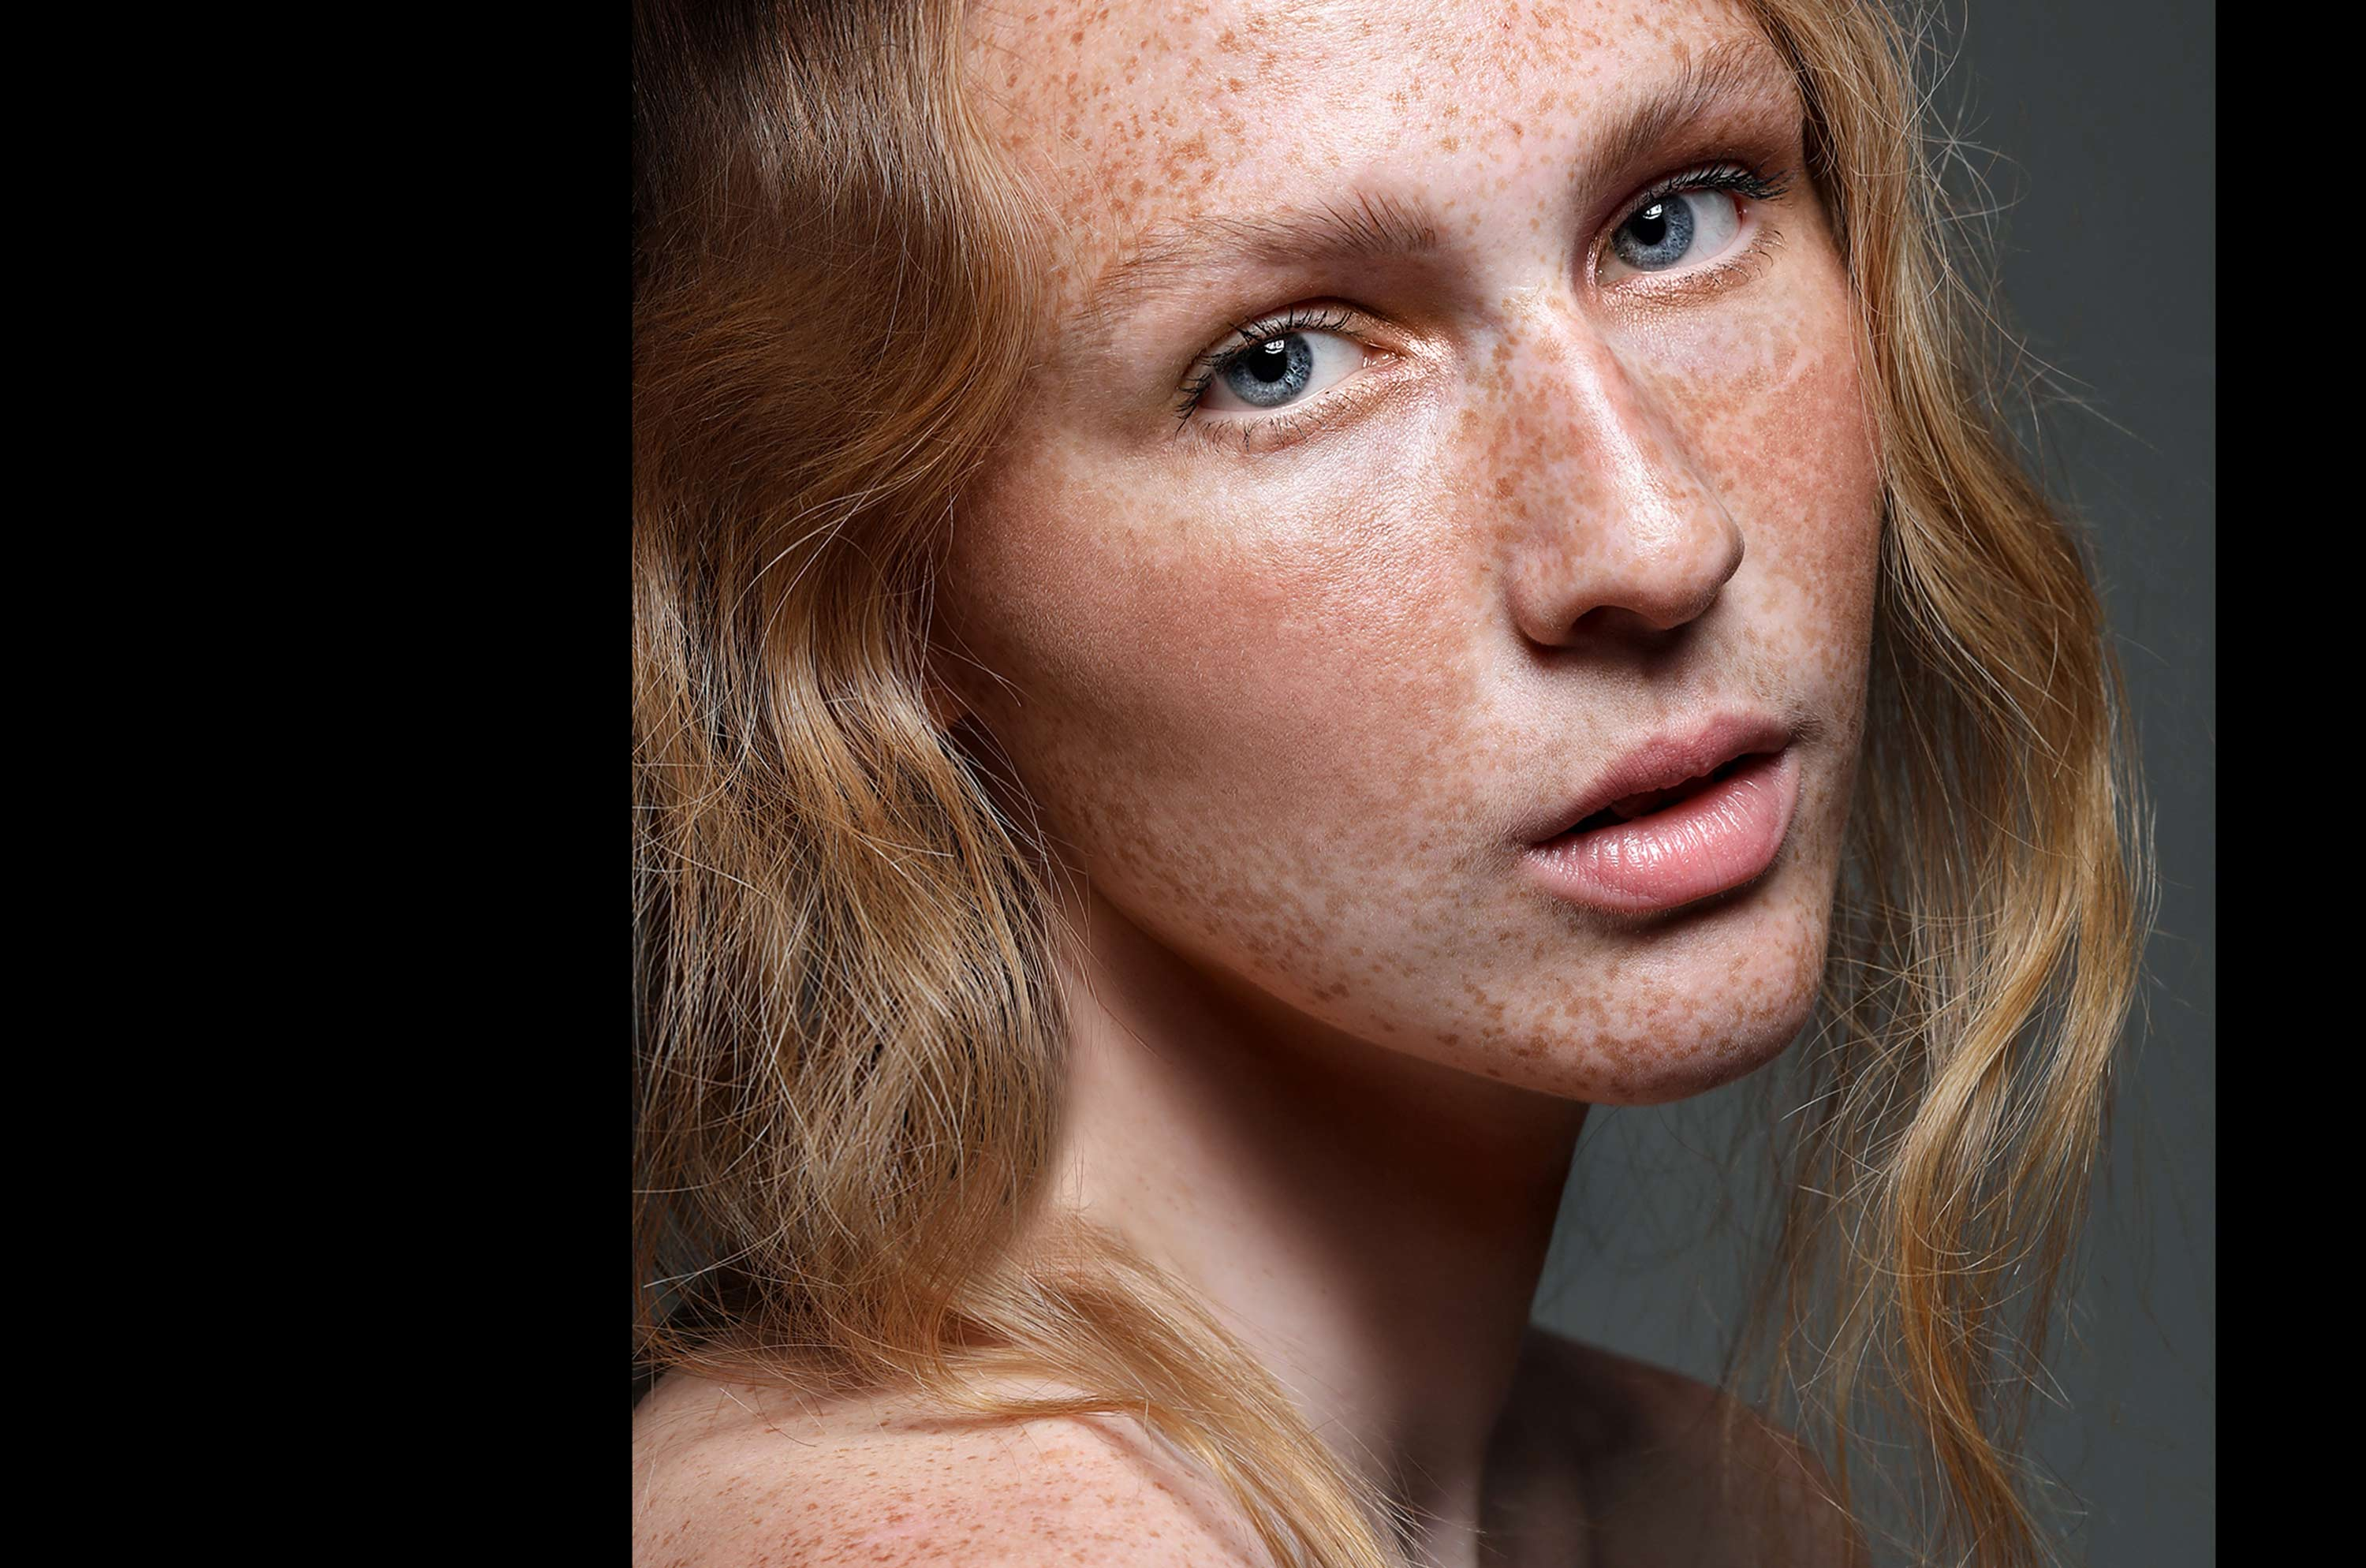 beauty-makeup-web-photographer-fashion-photogarphers-london-toronto-ontario-paula-tizzard-florencia-taylor-freckles-clean-beauty